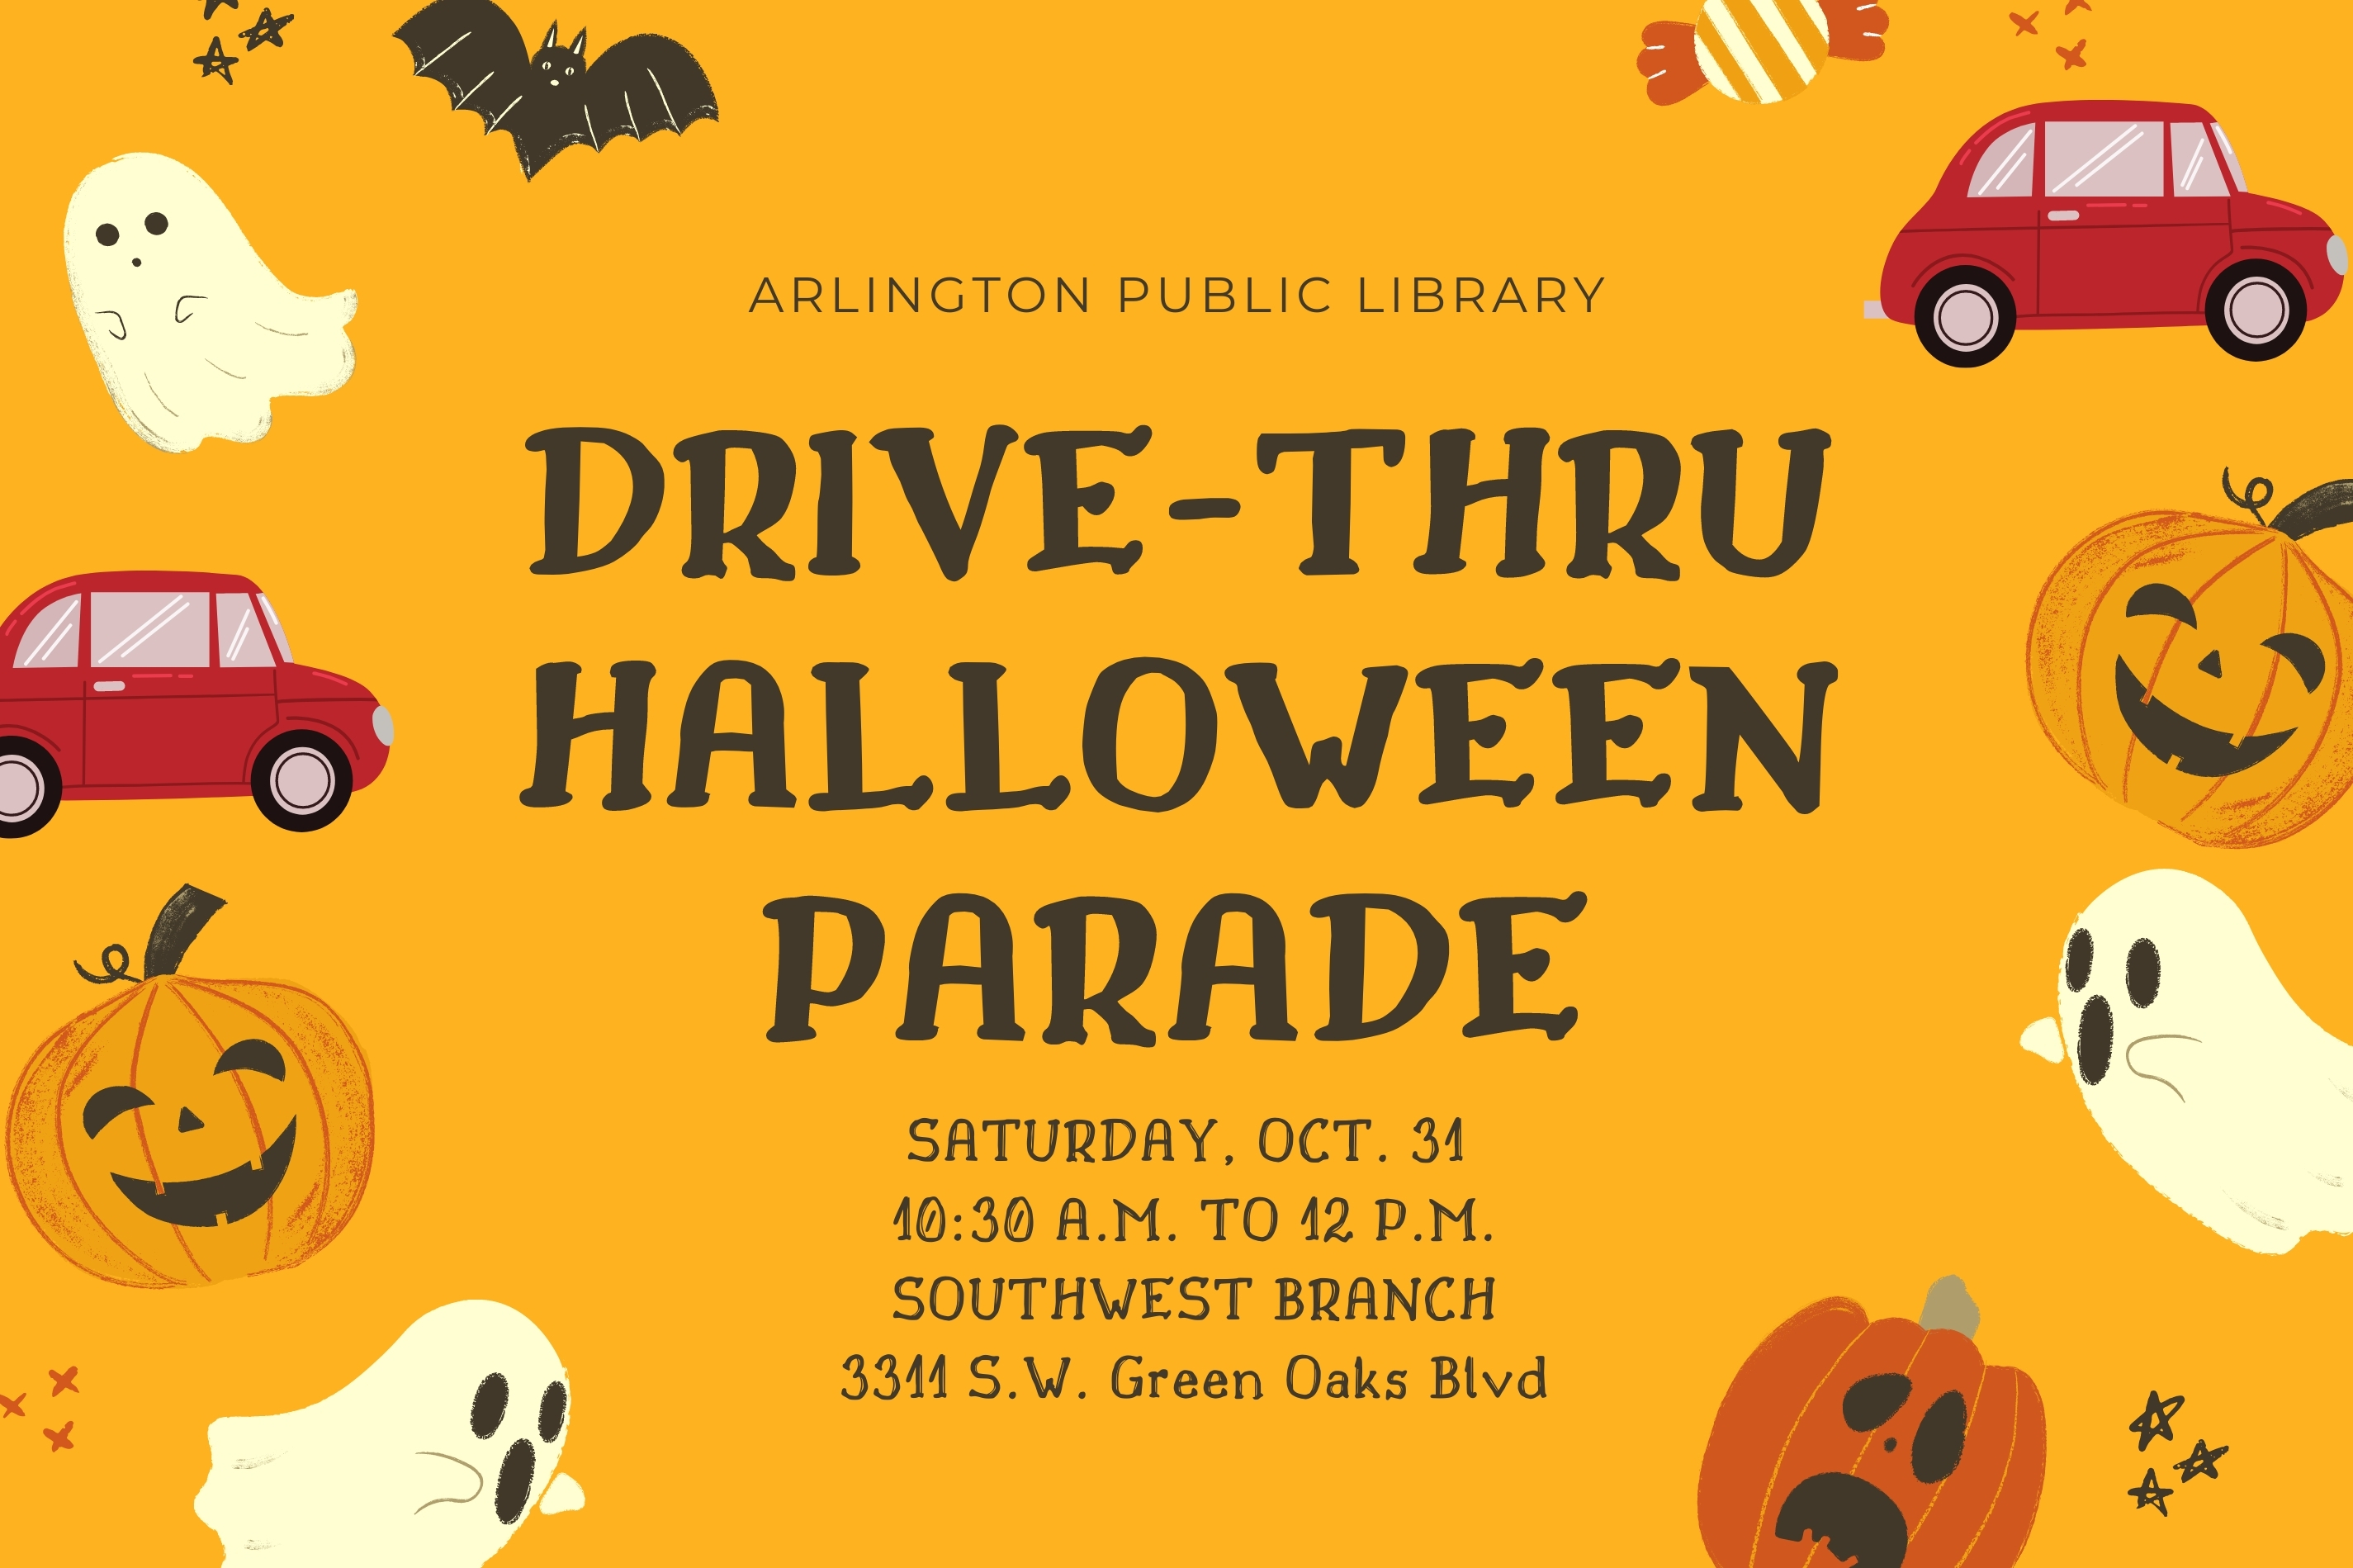 Have a Fa-boo-lous Halloween with Drive-Thru Parade